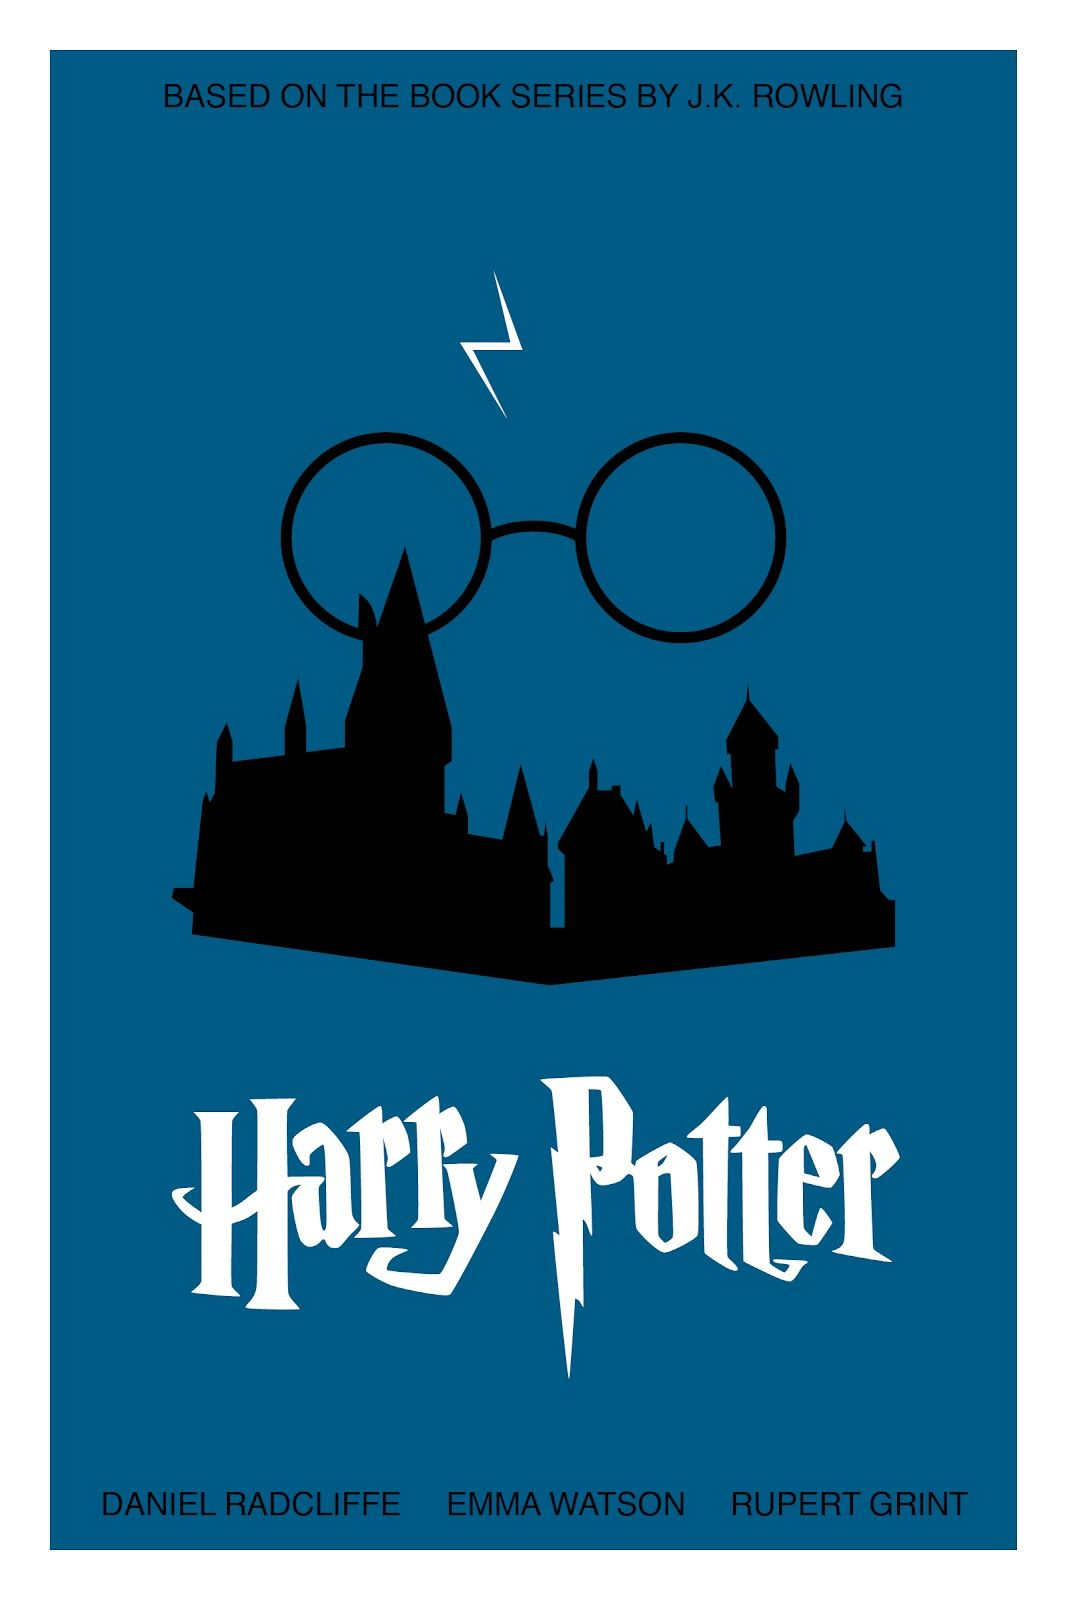 Book series poster harrypotter minimalist posters for Minimal art book